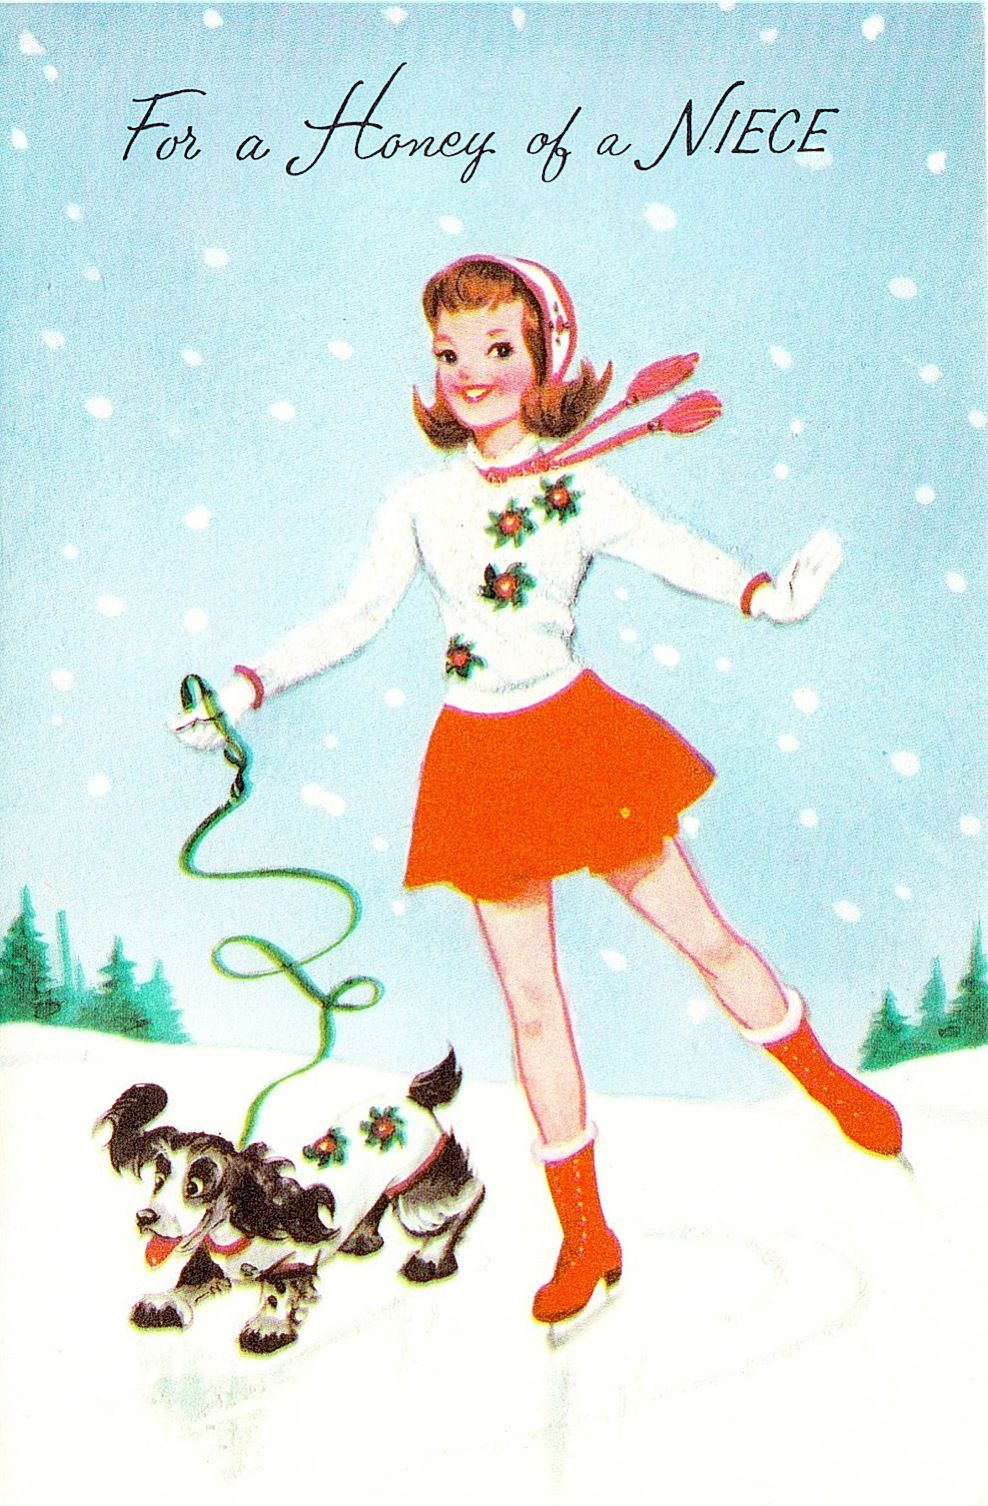 Vintage Glitter Sweater Ice Skater Girl w/ Dog Norcross Christmas Greeting Card